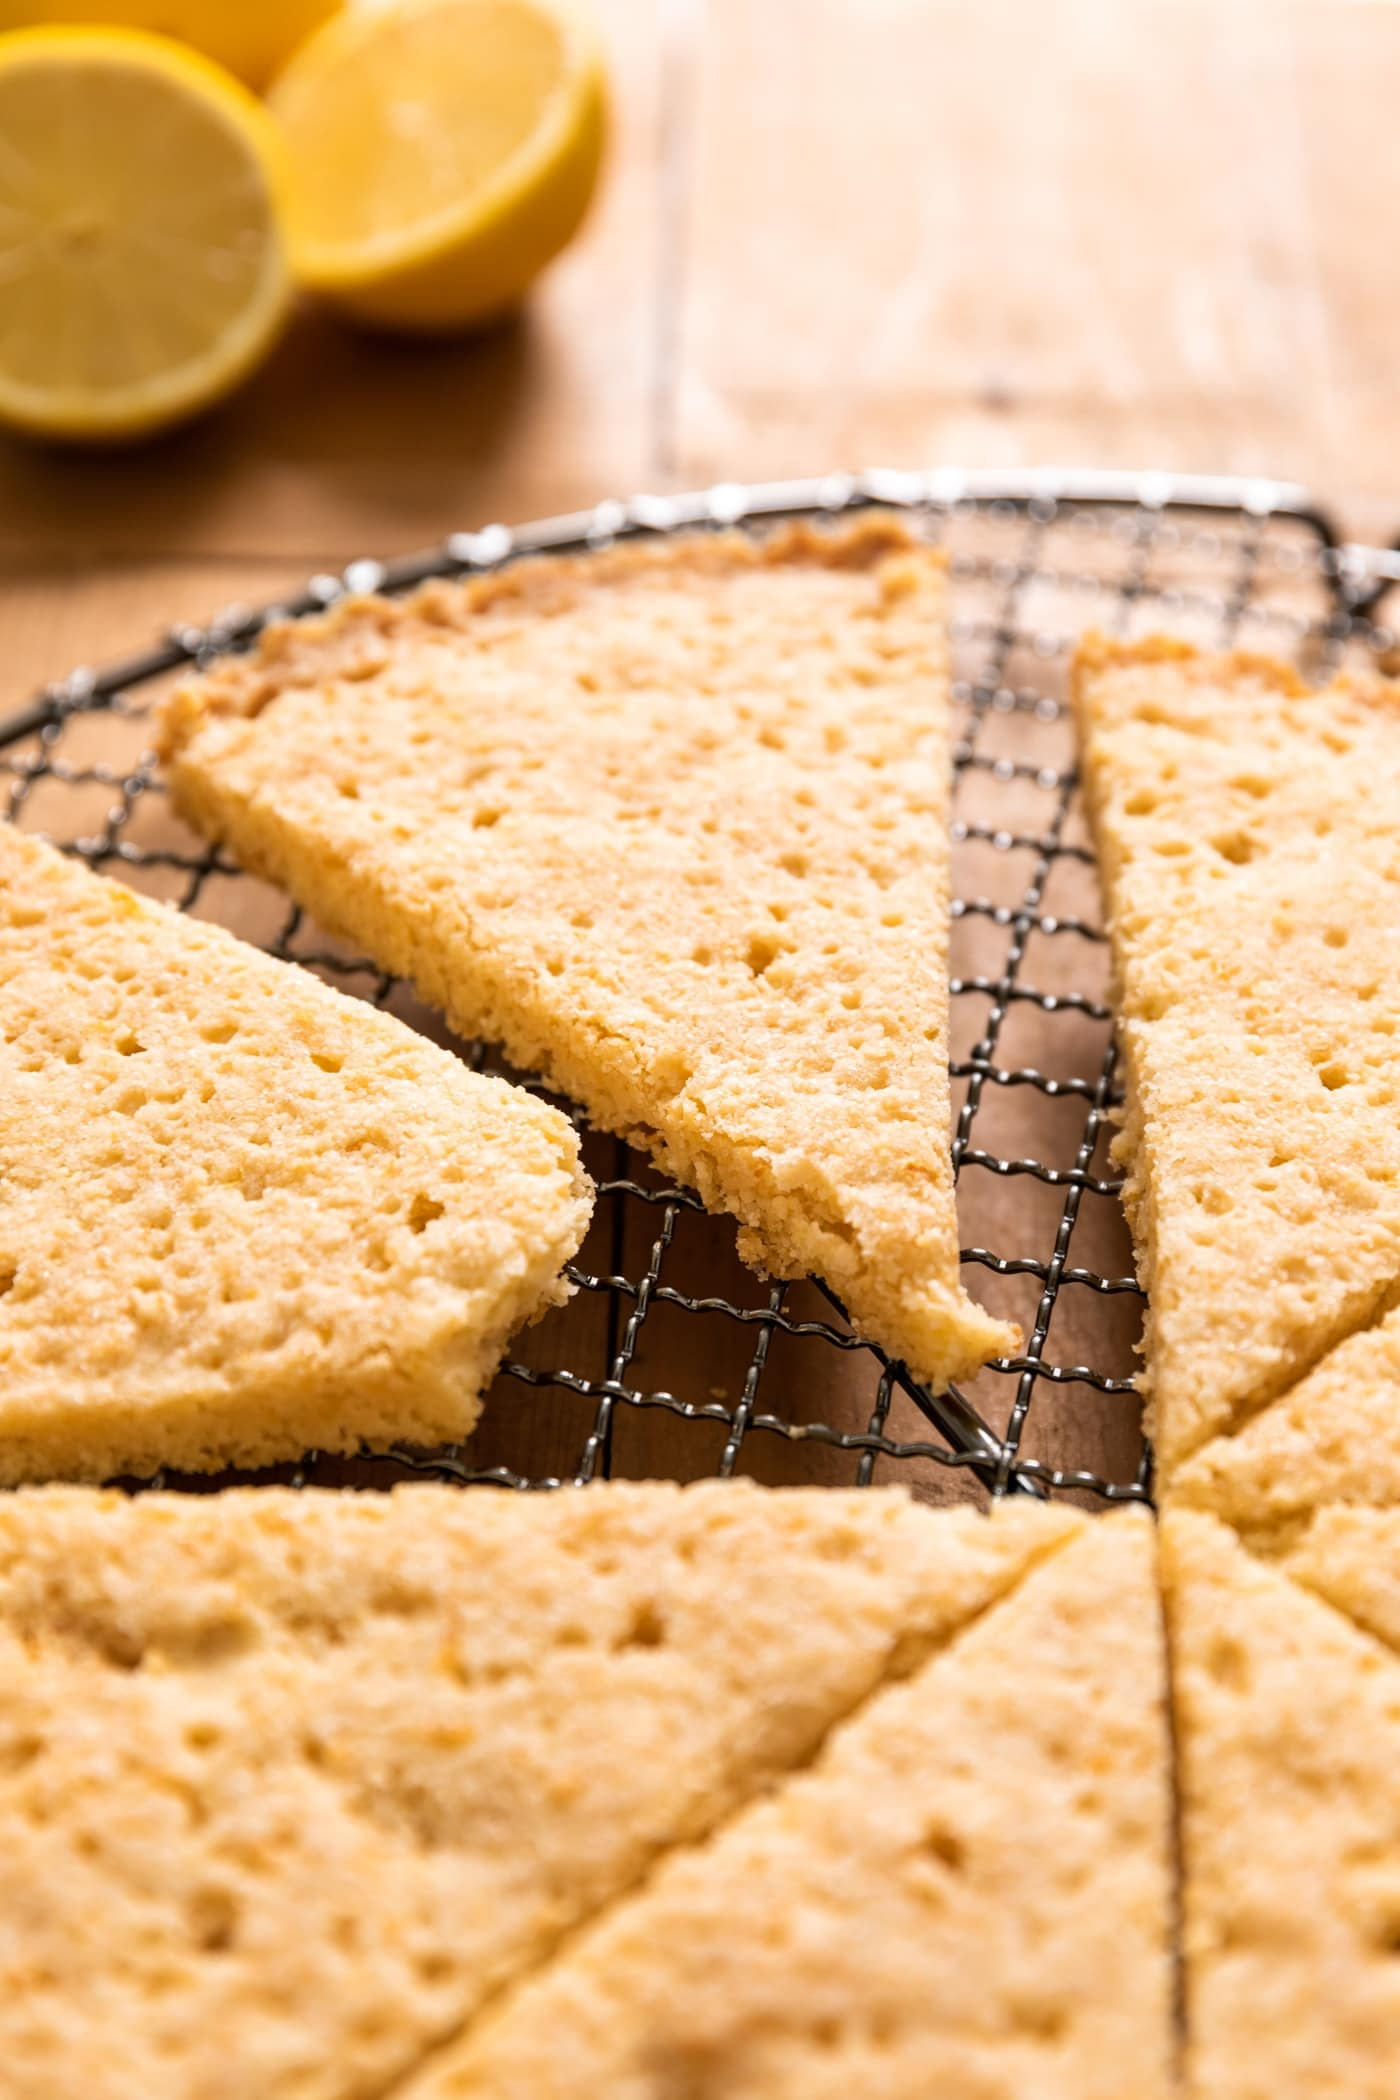 Triangle of golden colored lemon shortbread cookie sitting with other cookies on metal cooling rack with extra lemons in background